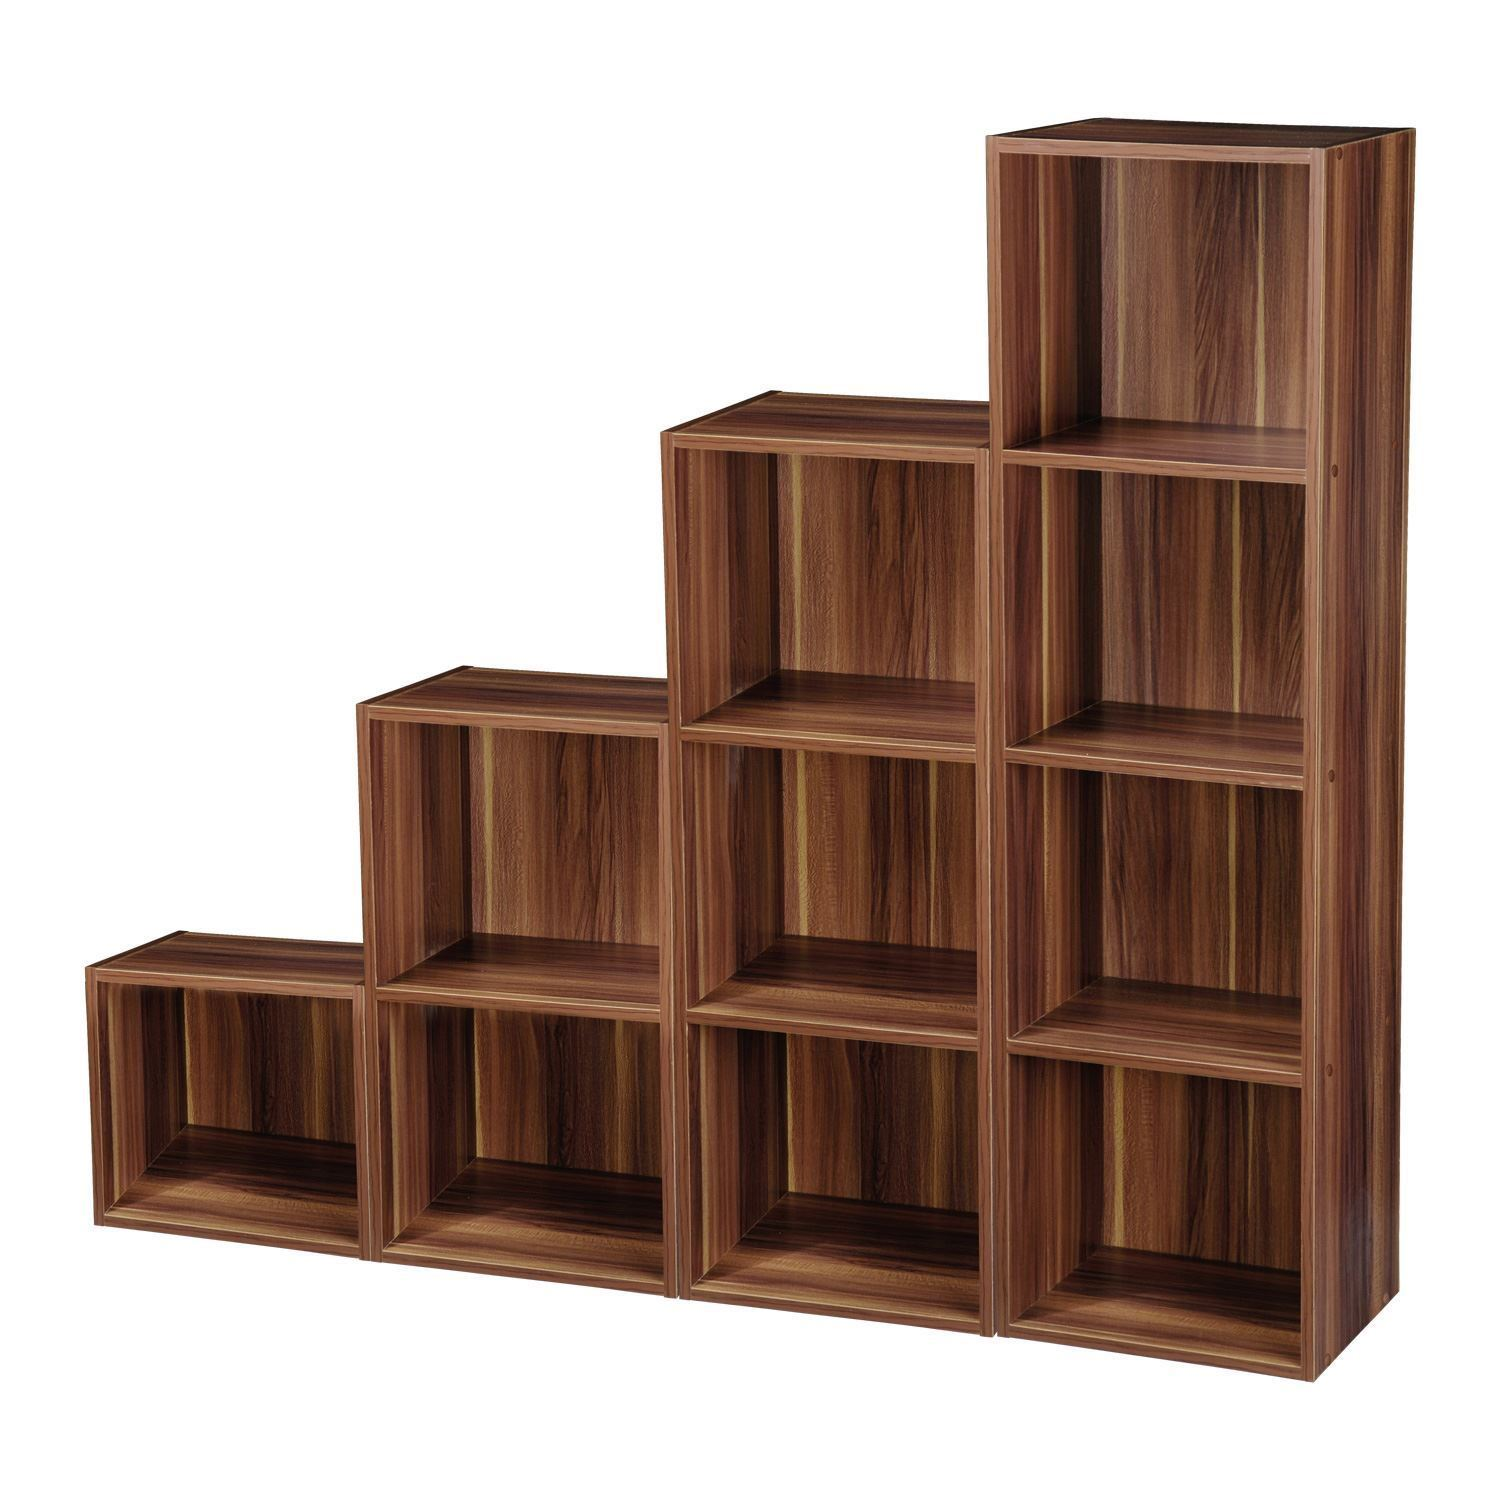 Tier wooden bookcase shelving bookshelf storage